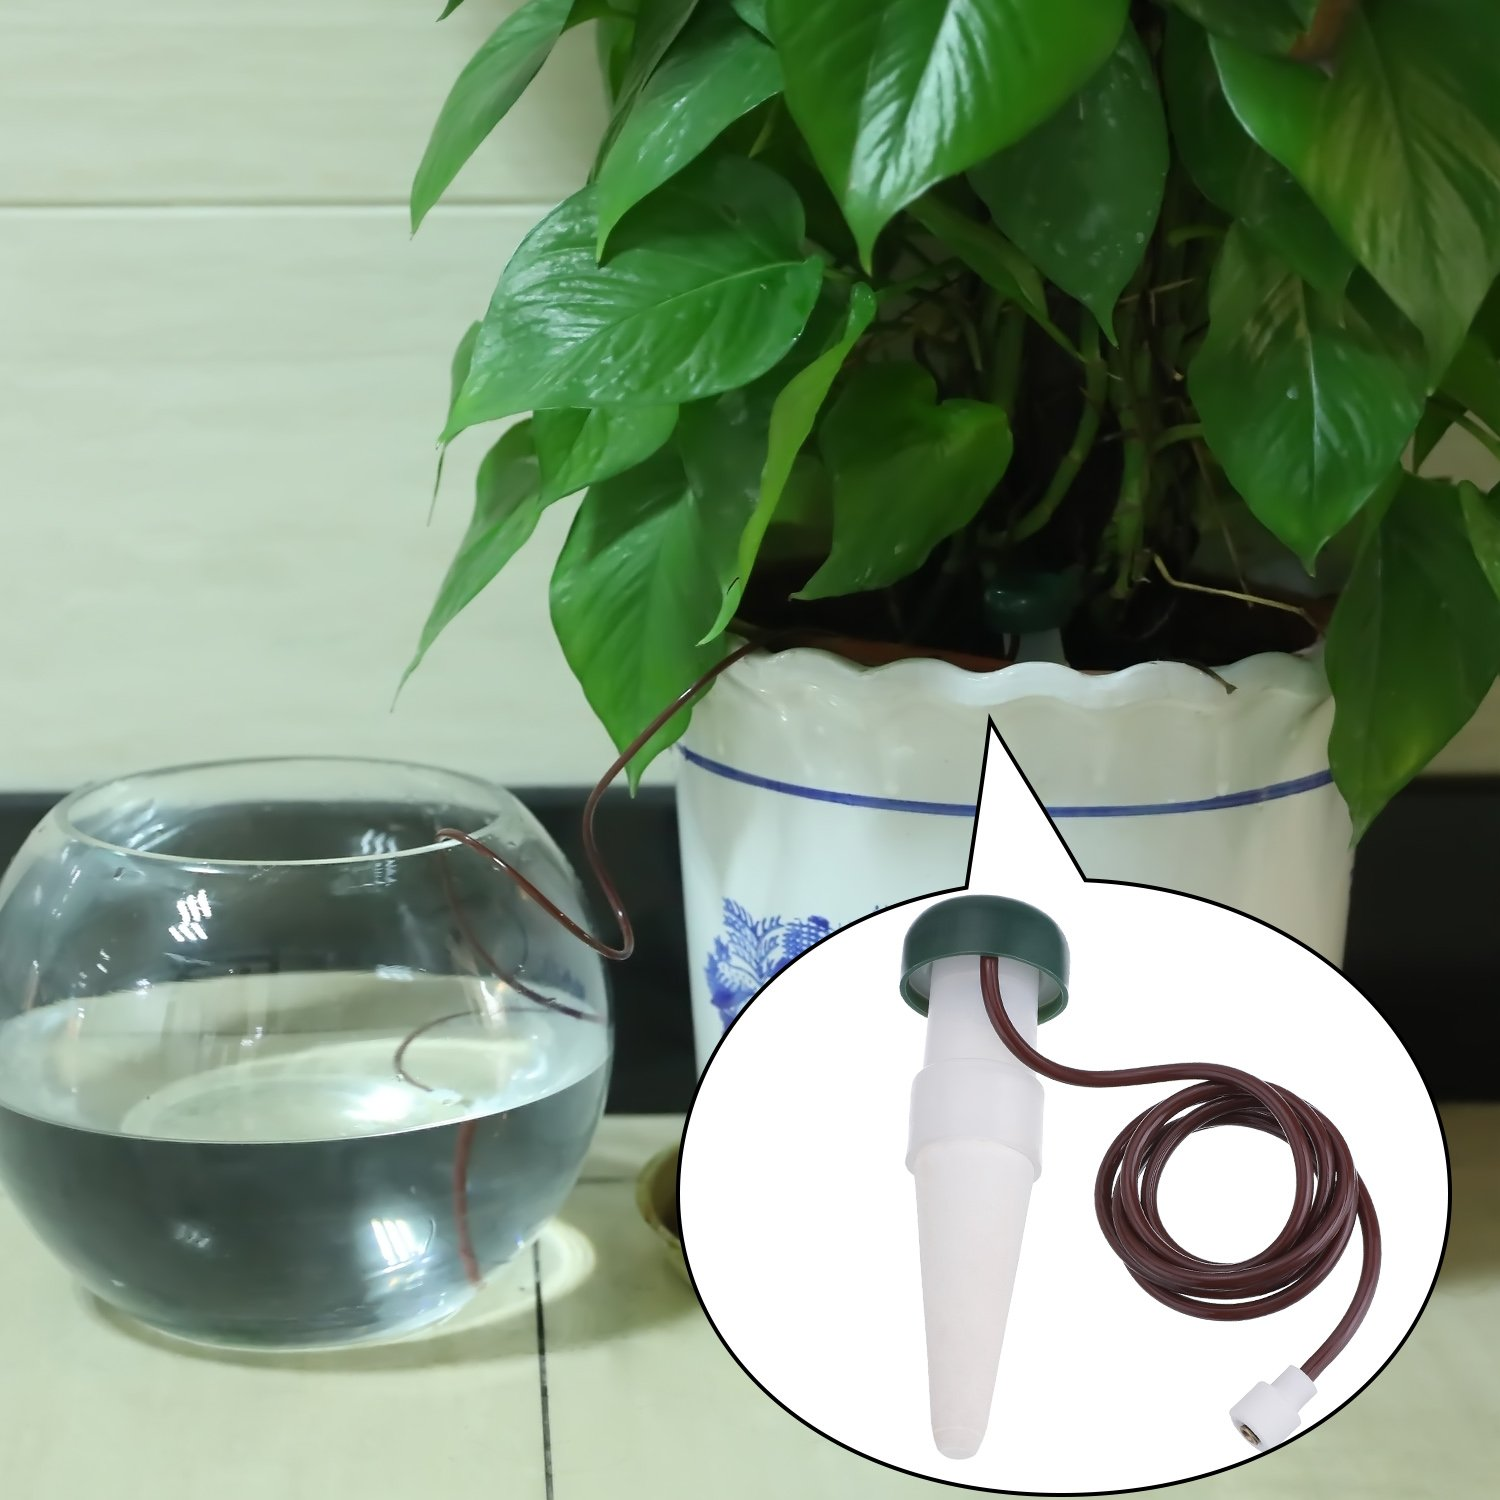 Watering Stakes Automatic Watering System Plant Self Drip Irrigation Slow Release for Indoor or Outdoor Houseplants 5